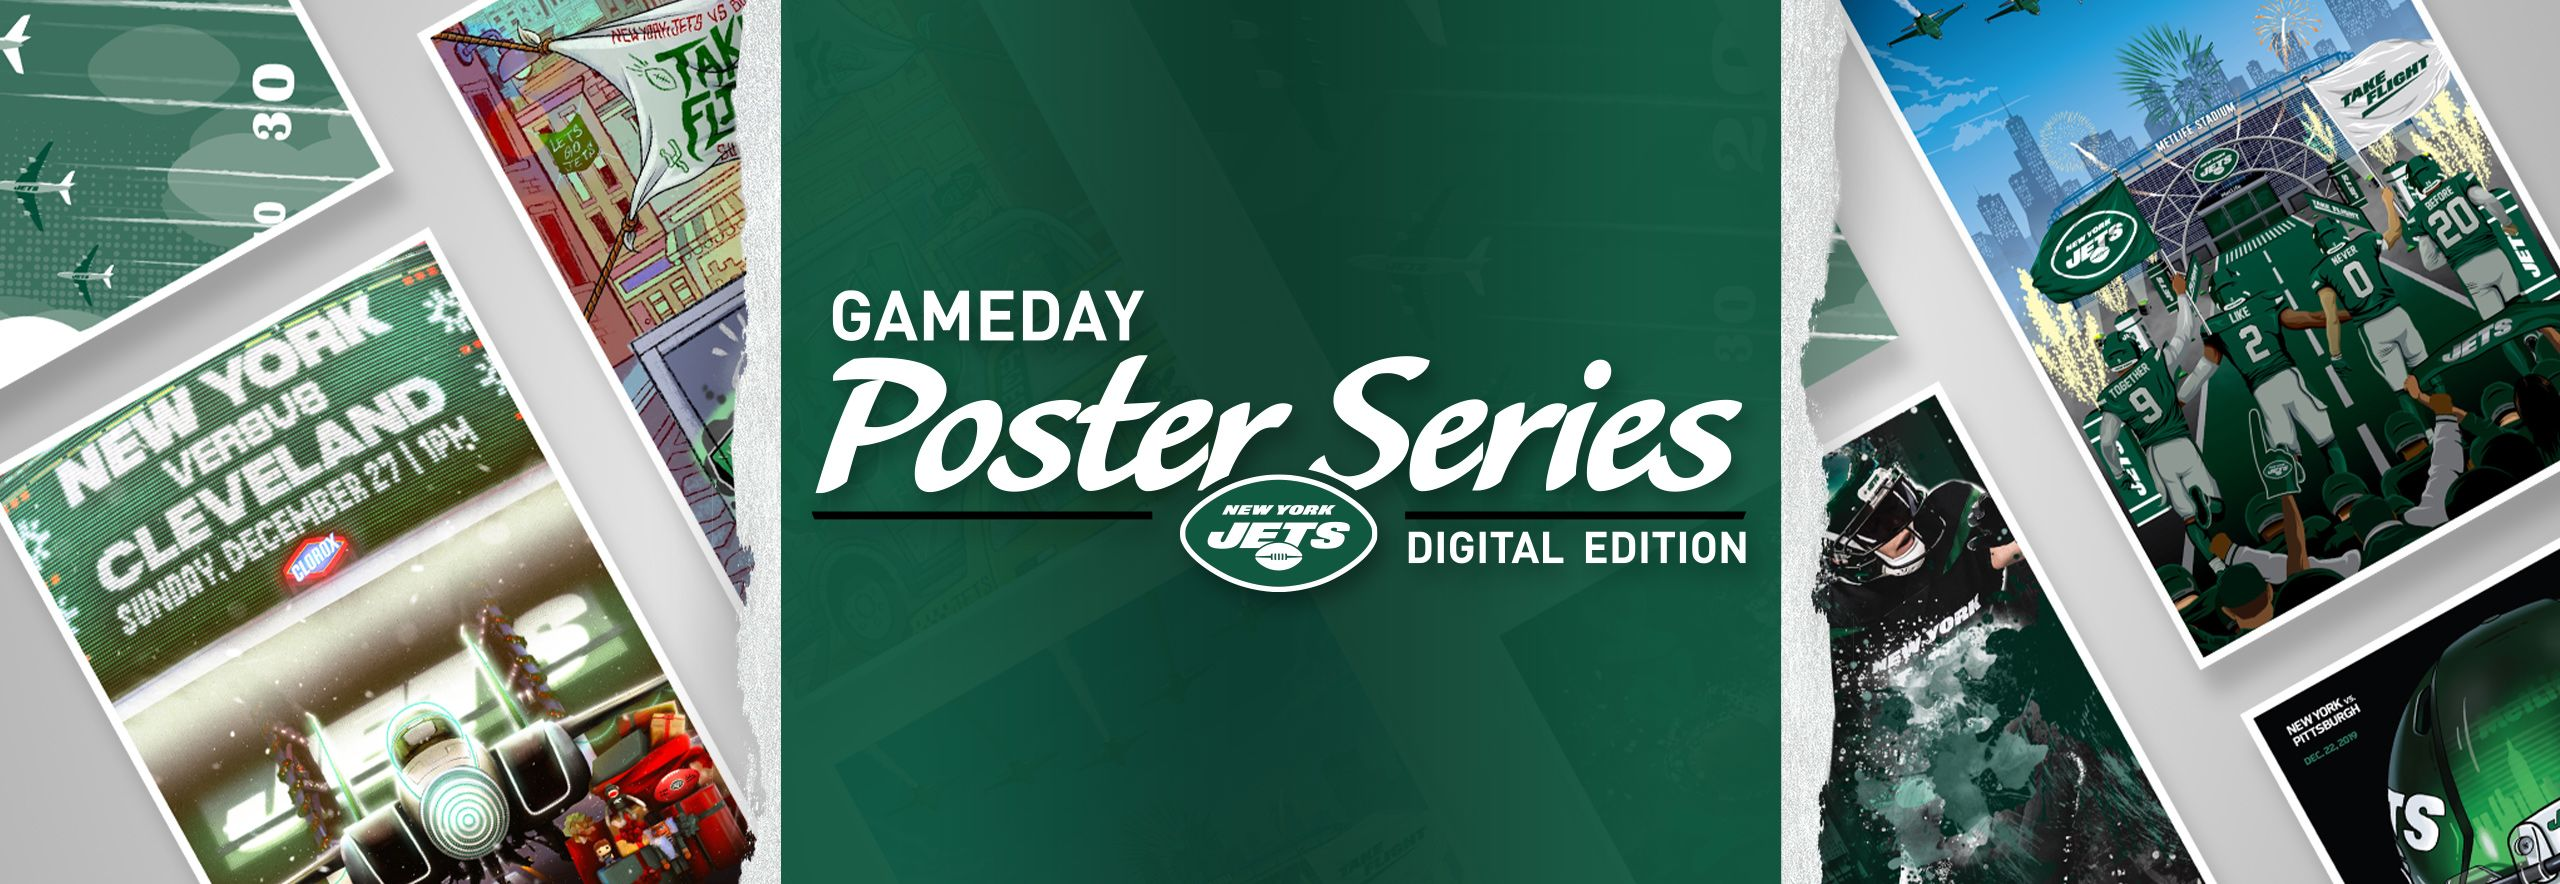 New York Jets Gameday Poster Series